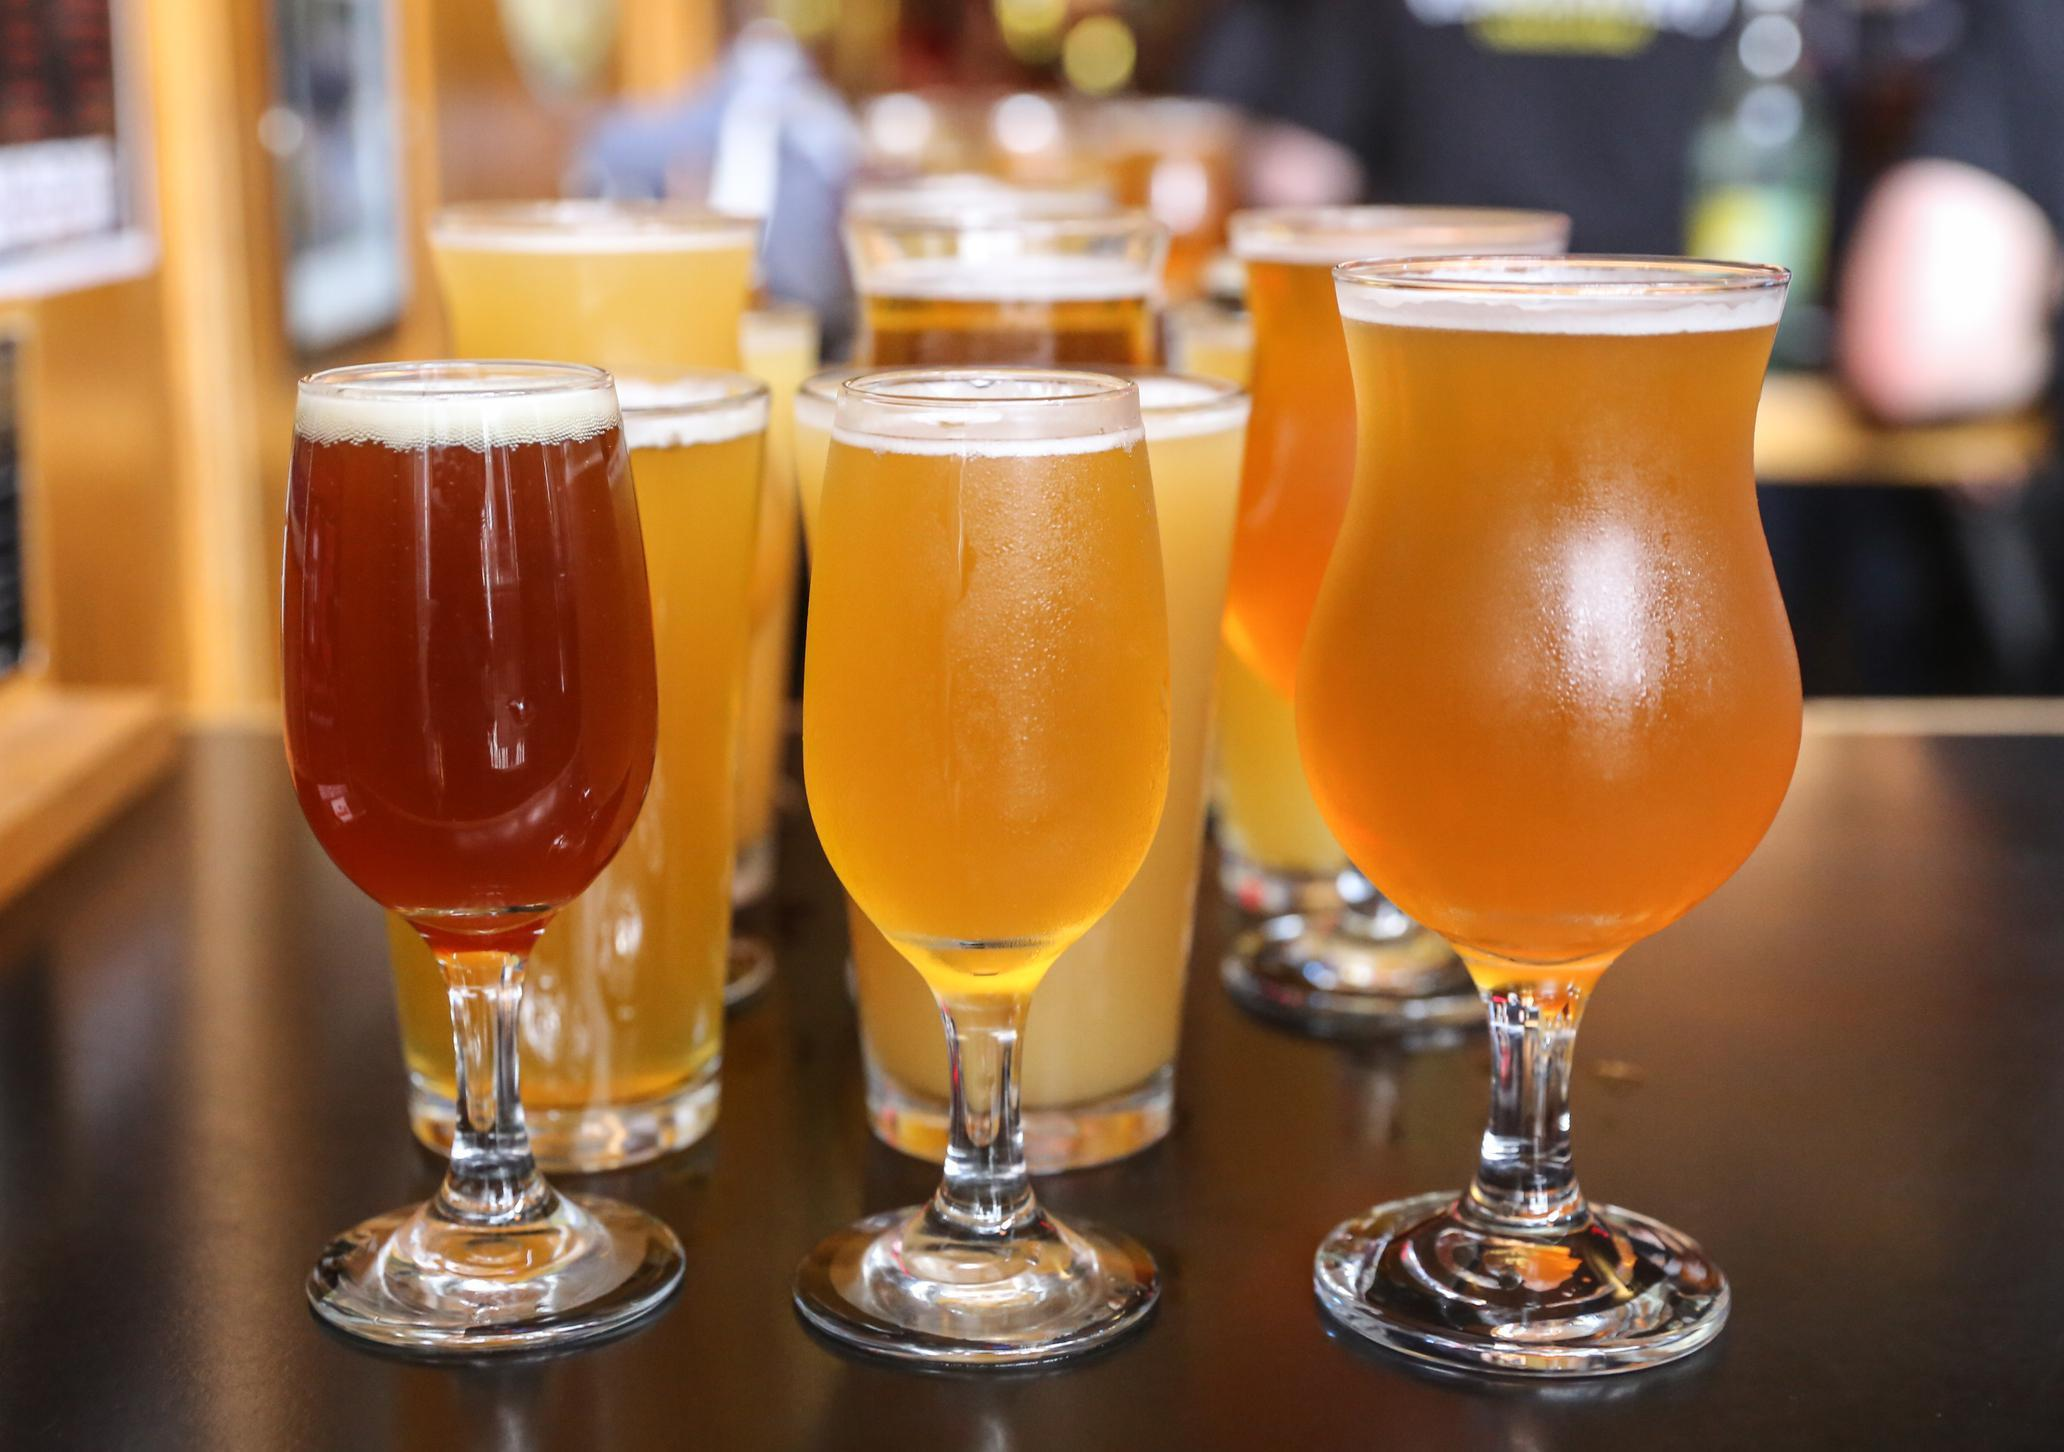 What's The Difference Between A Lager And An Ale? And Other Beer photo